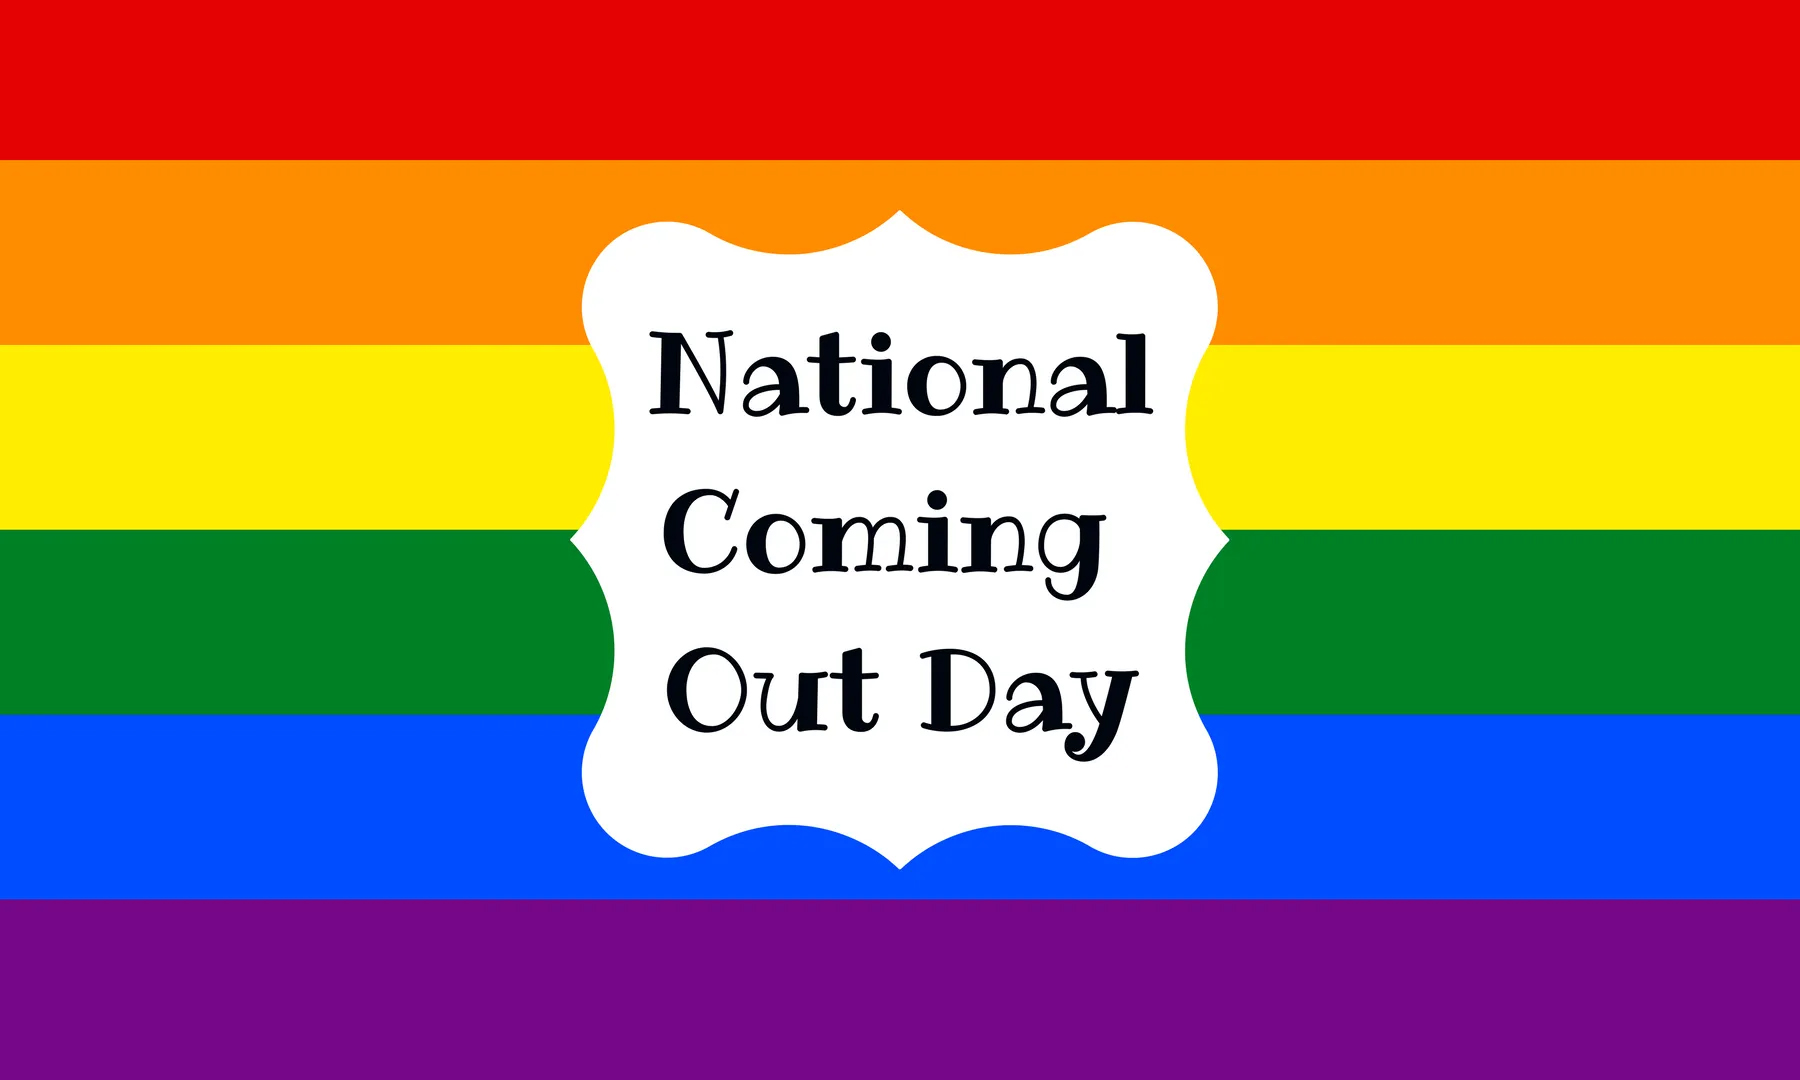 October 11th National Coming Out Day